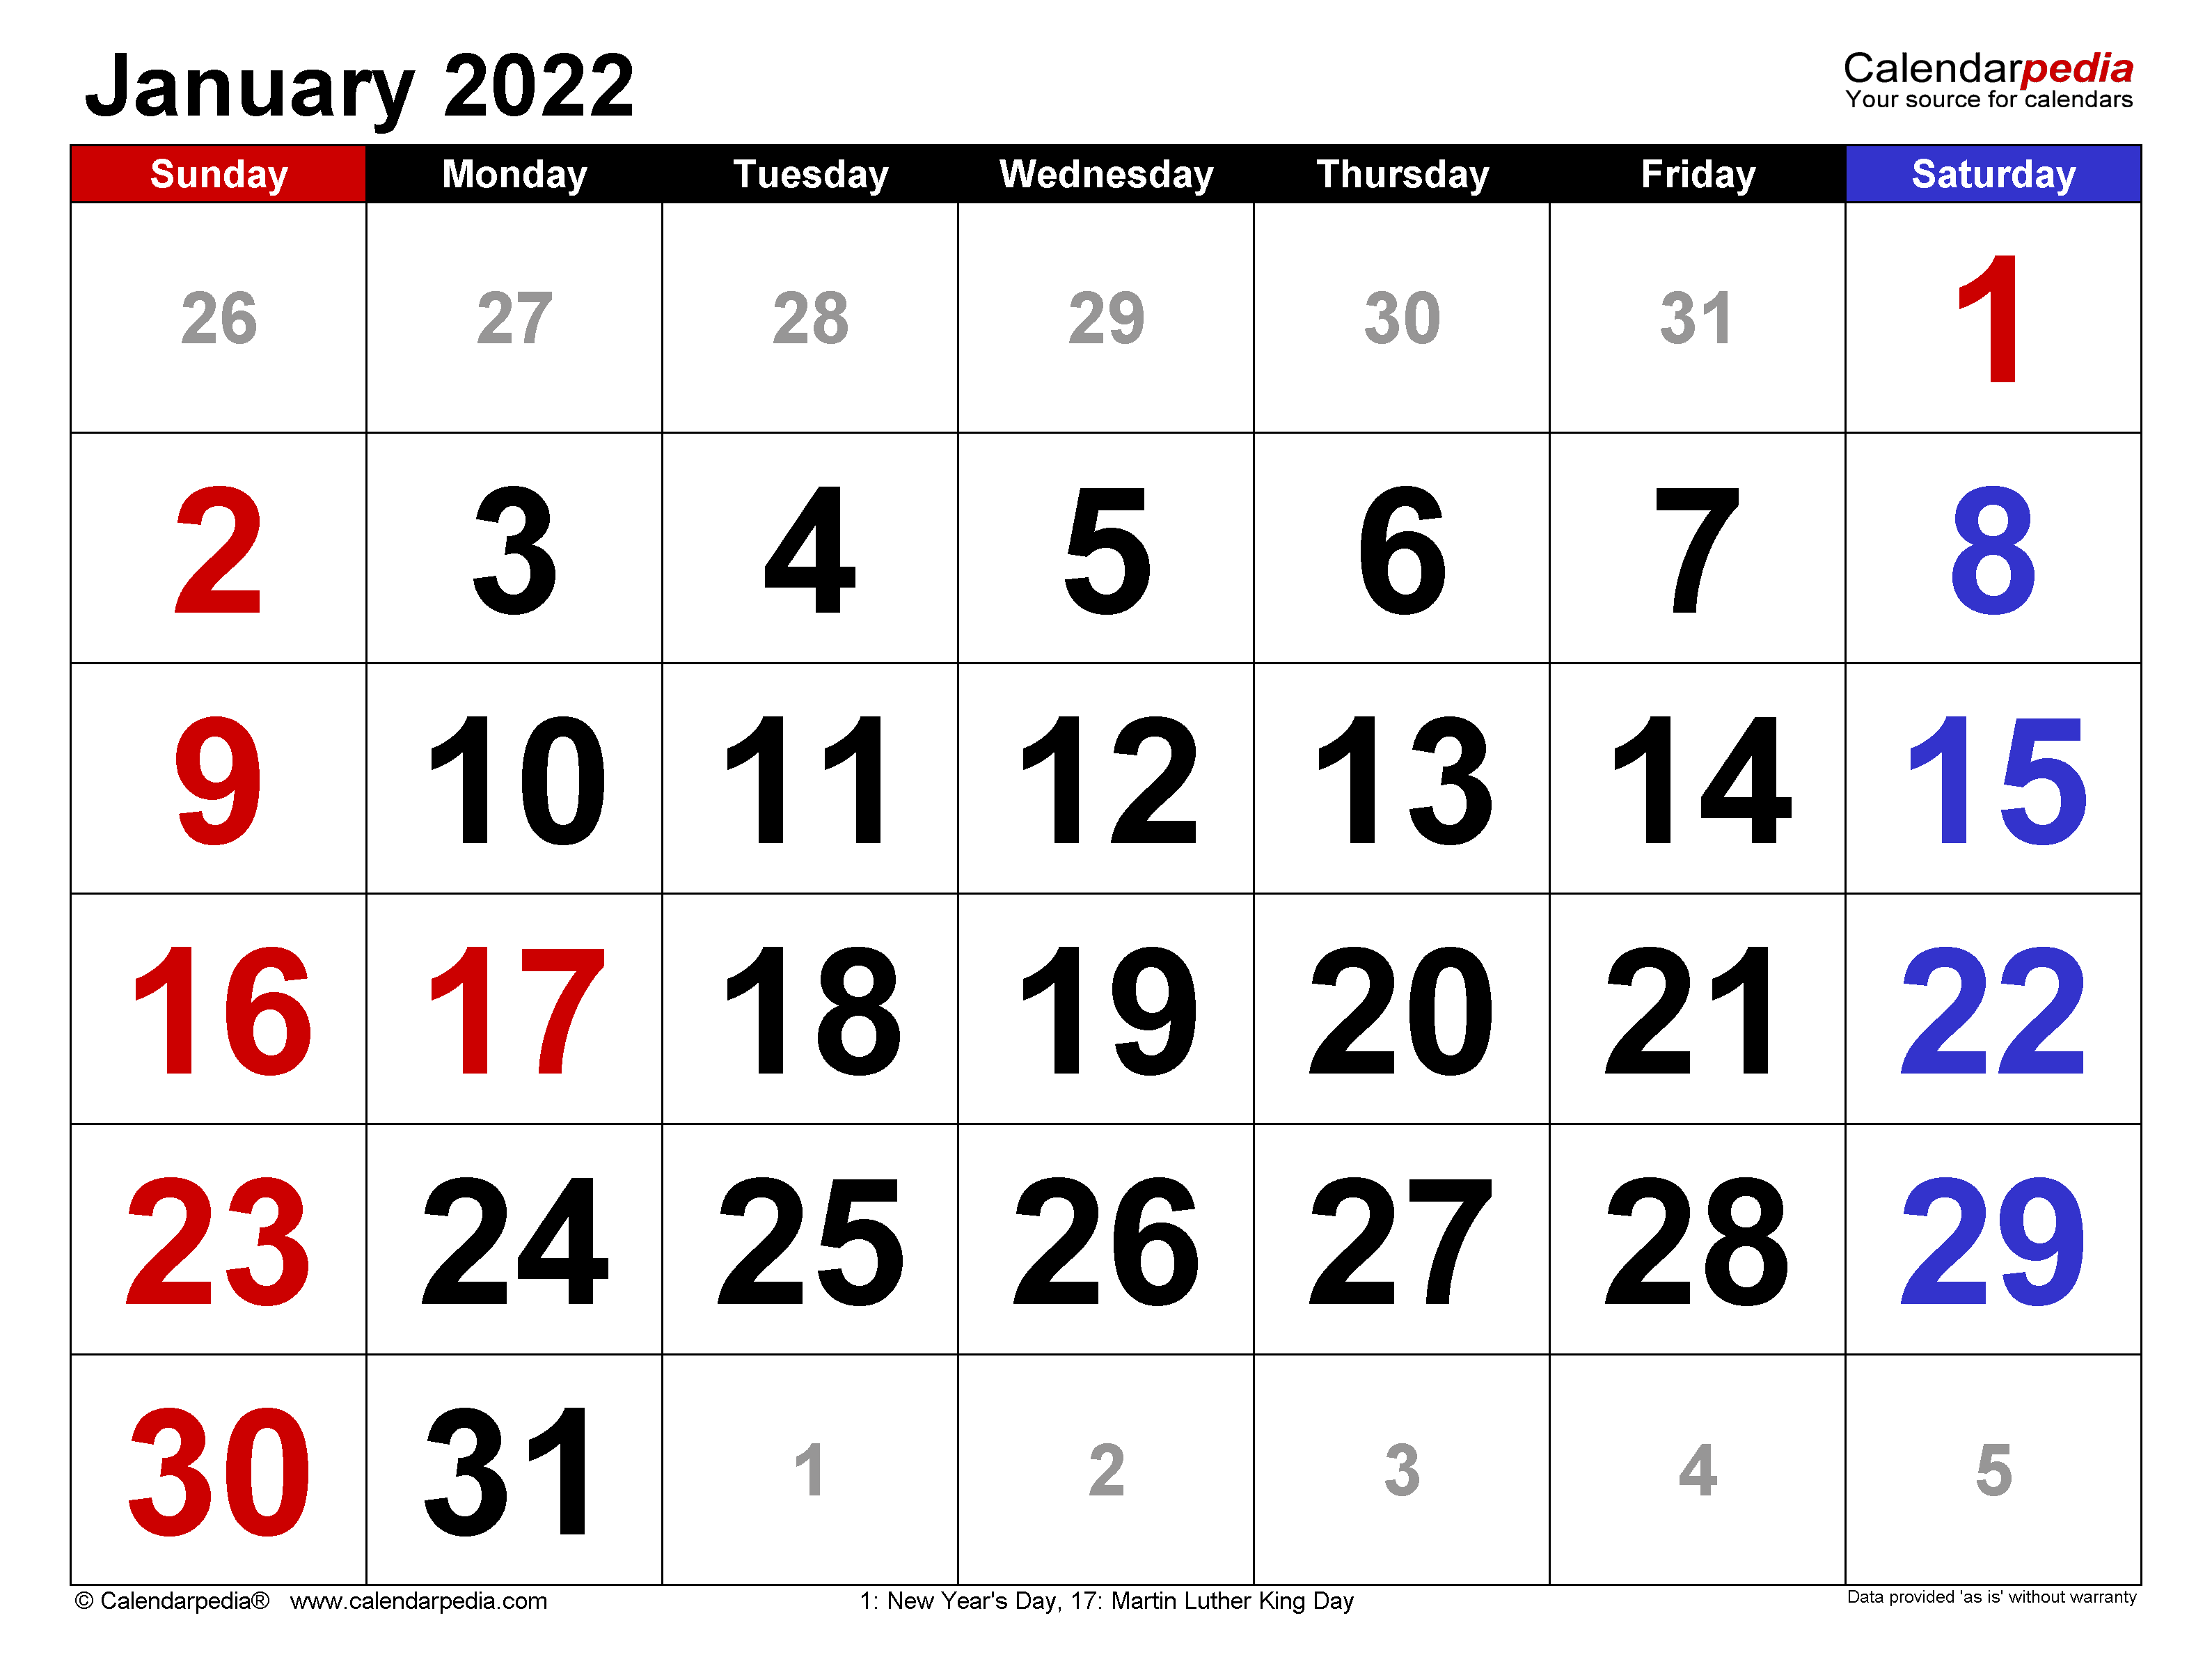 Calendar Of January 2022.January 2022 Calendar Templates For Word Excel And Pdf